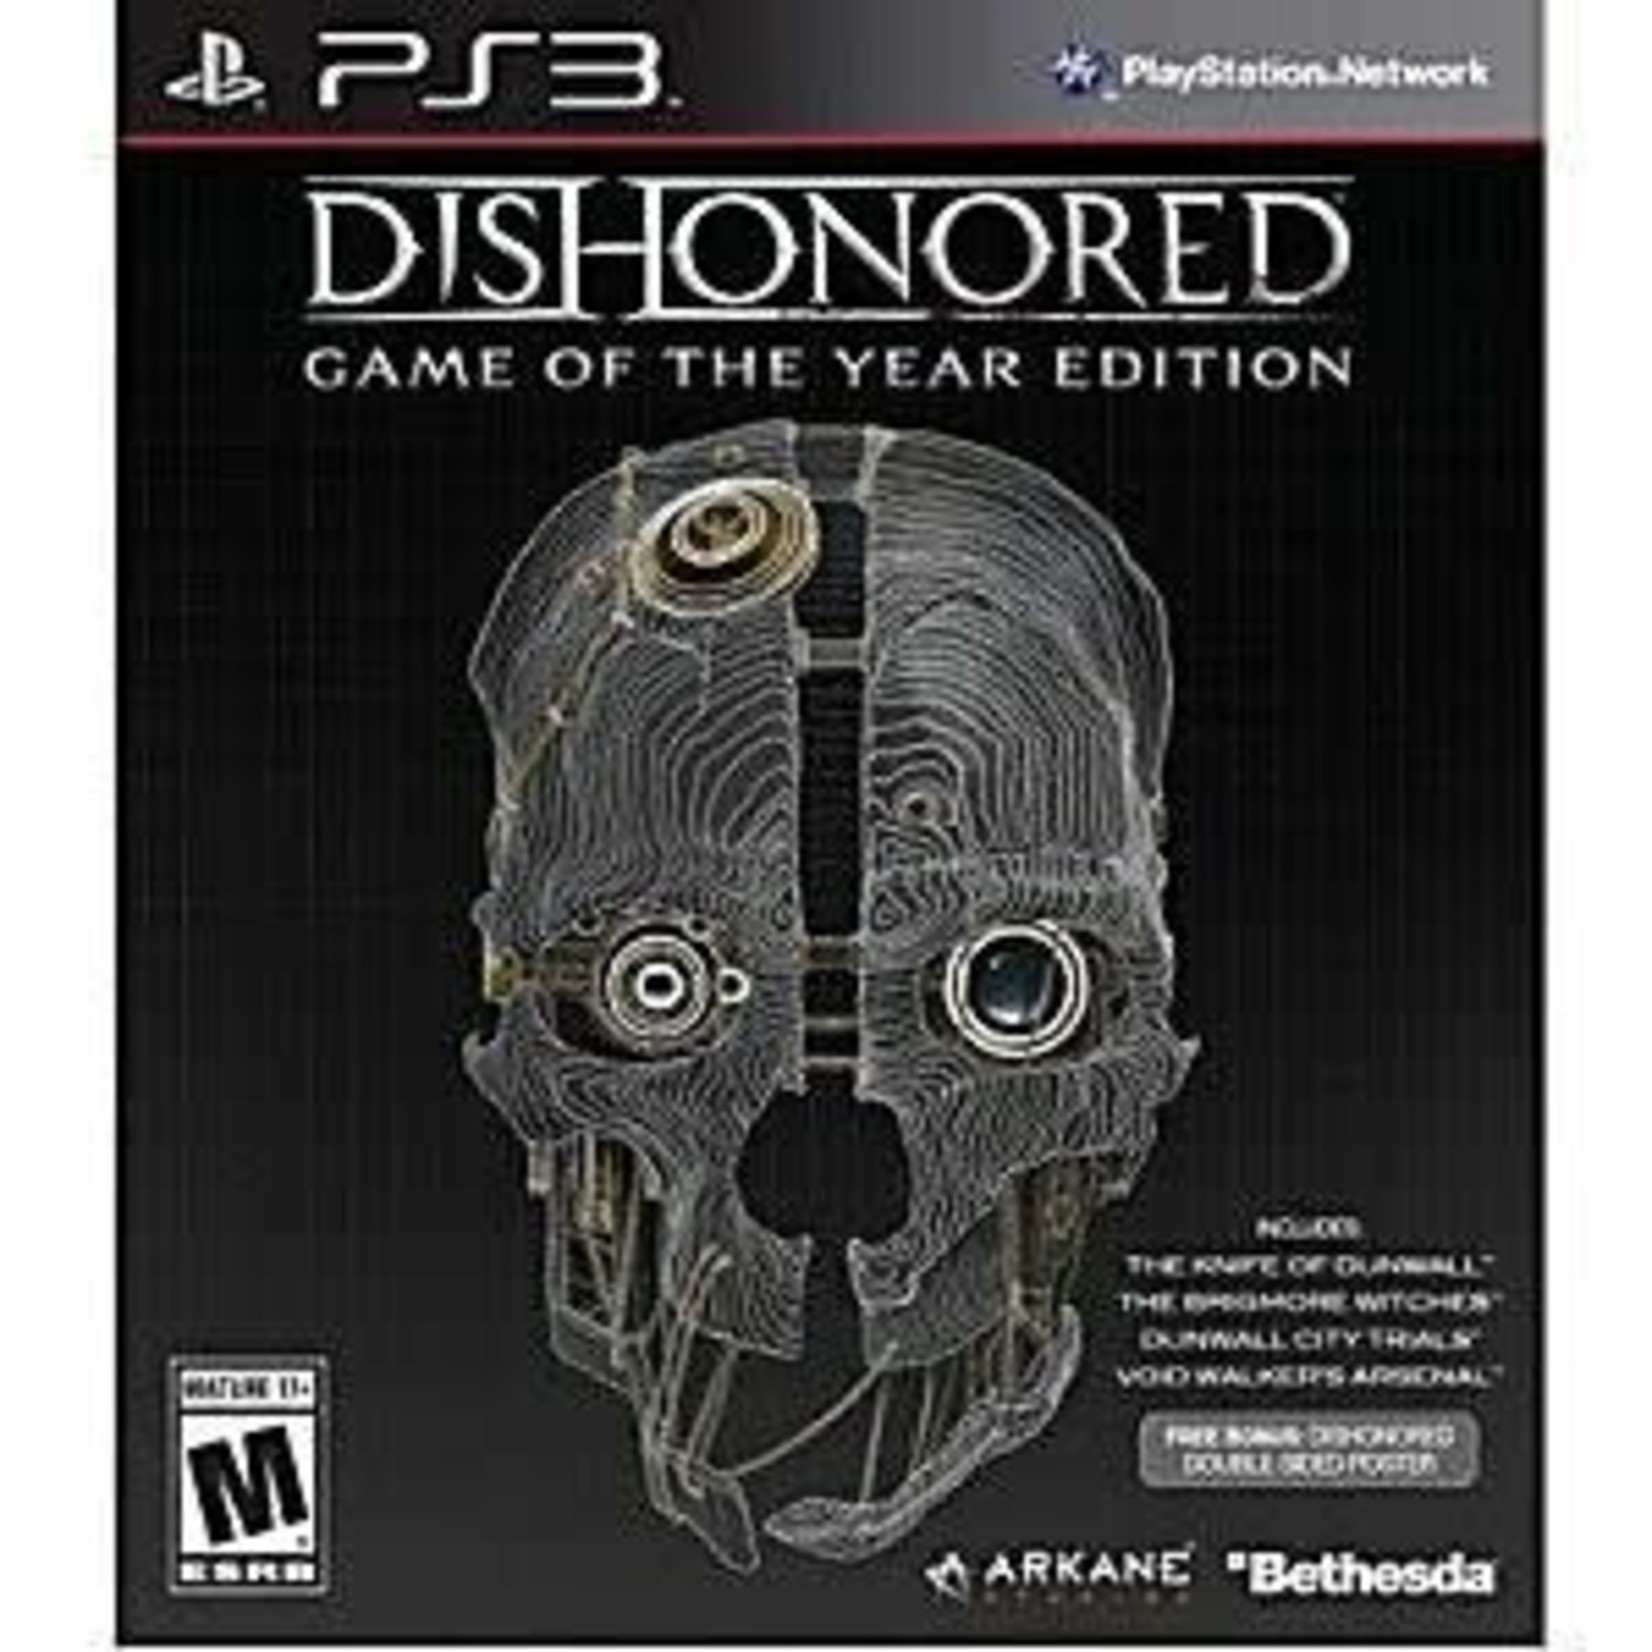 PS3U-Dishonored Game of the Year Edition